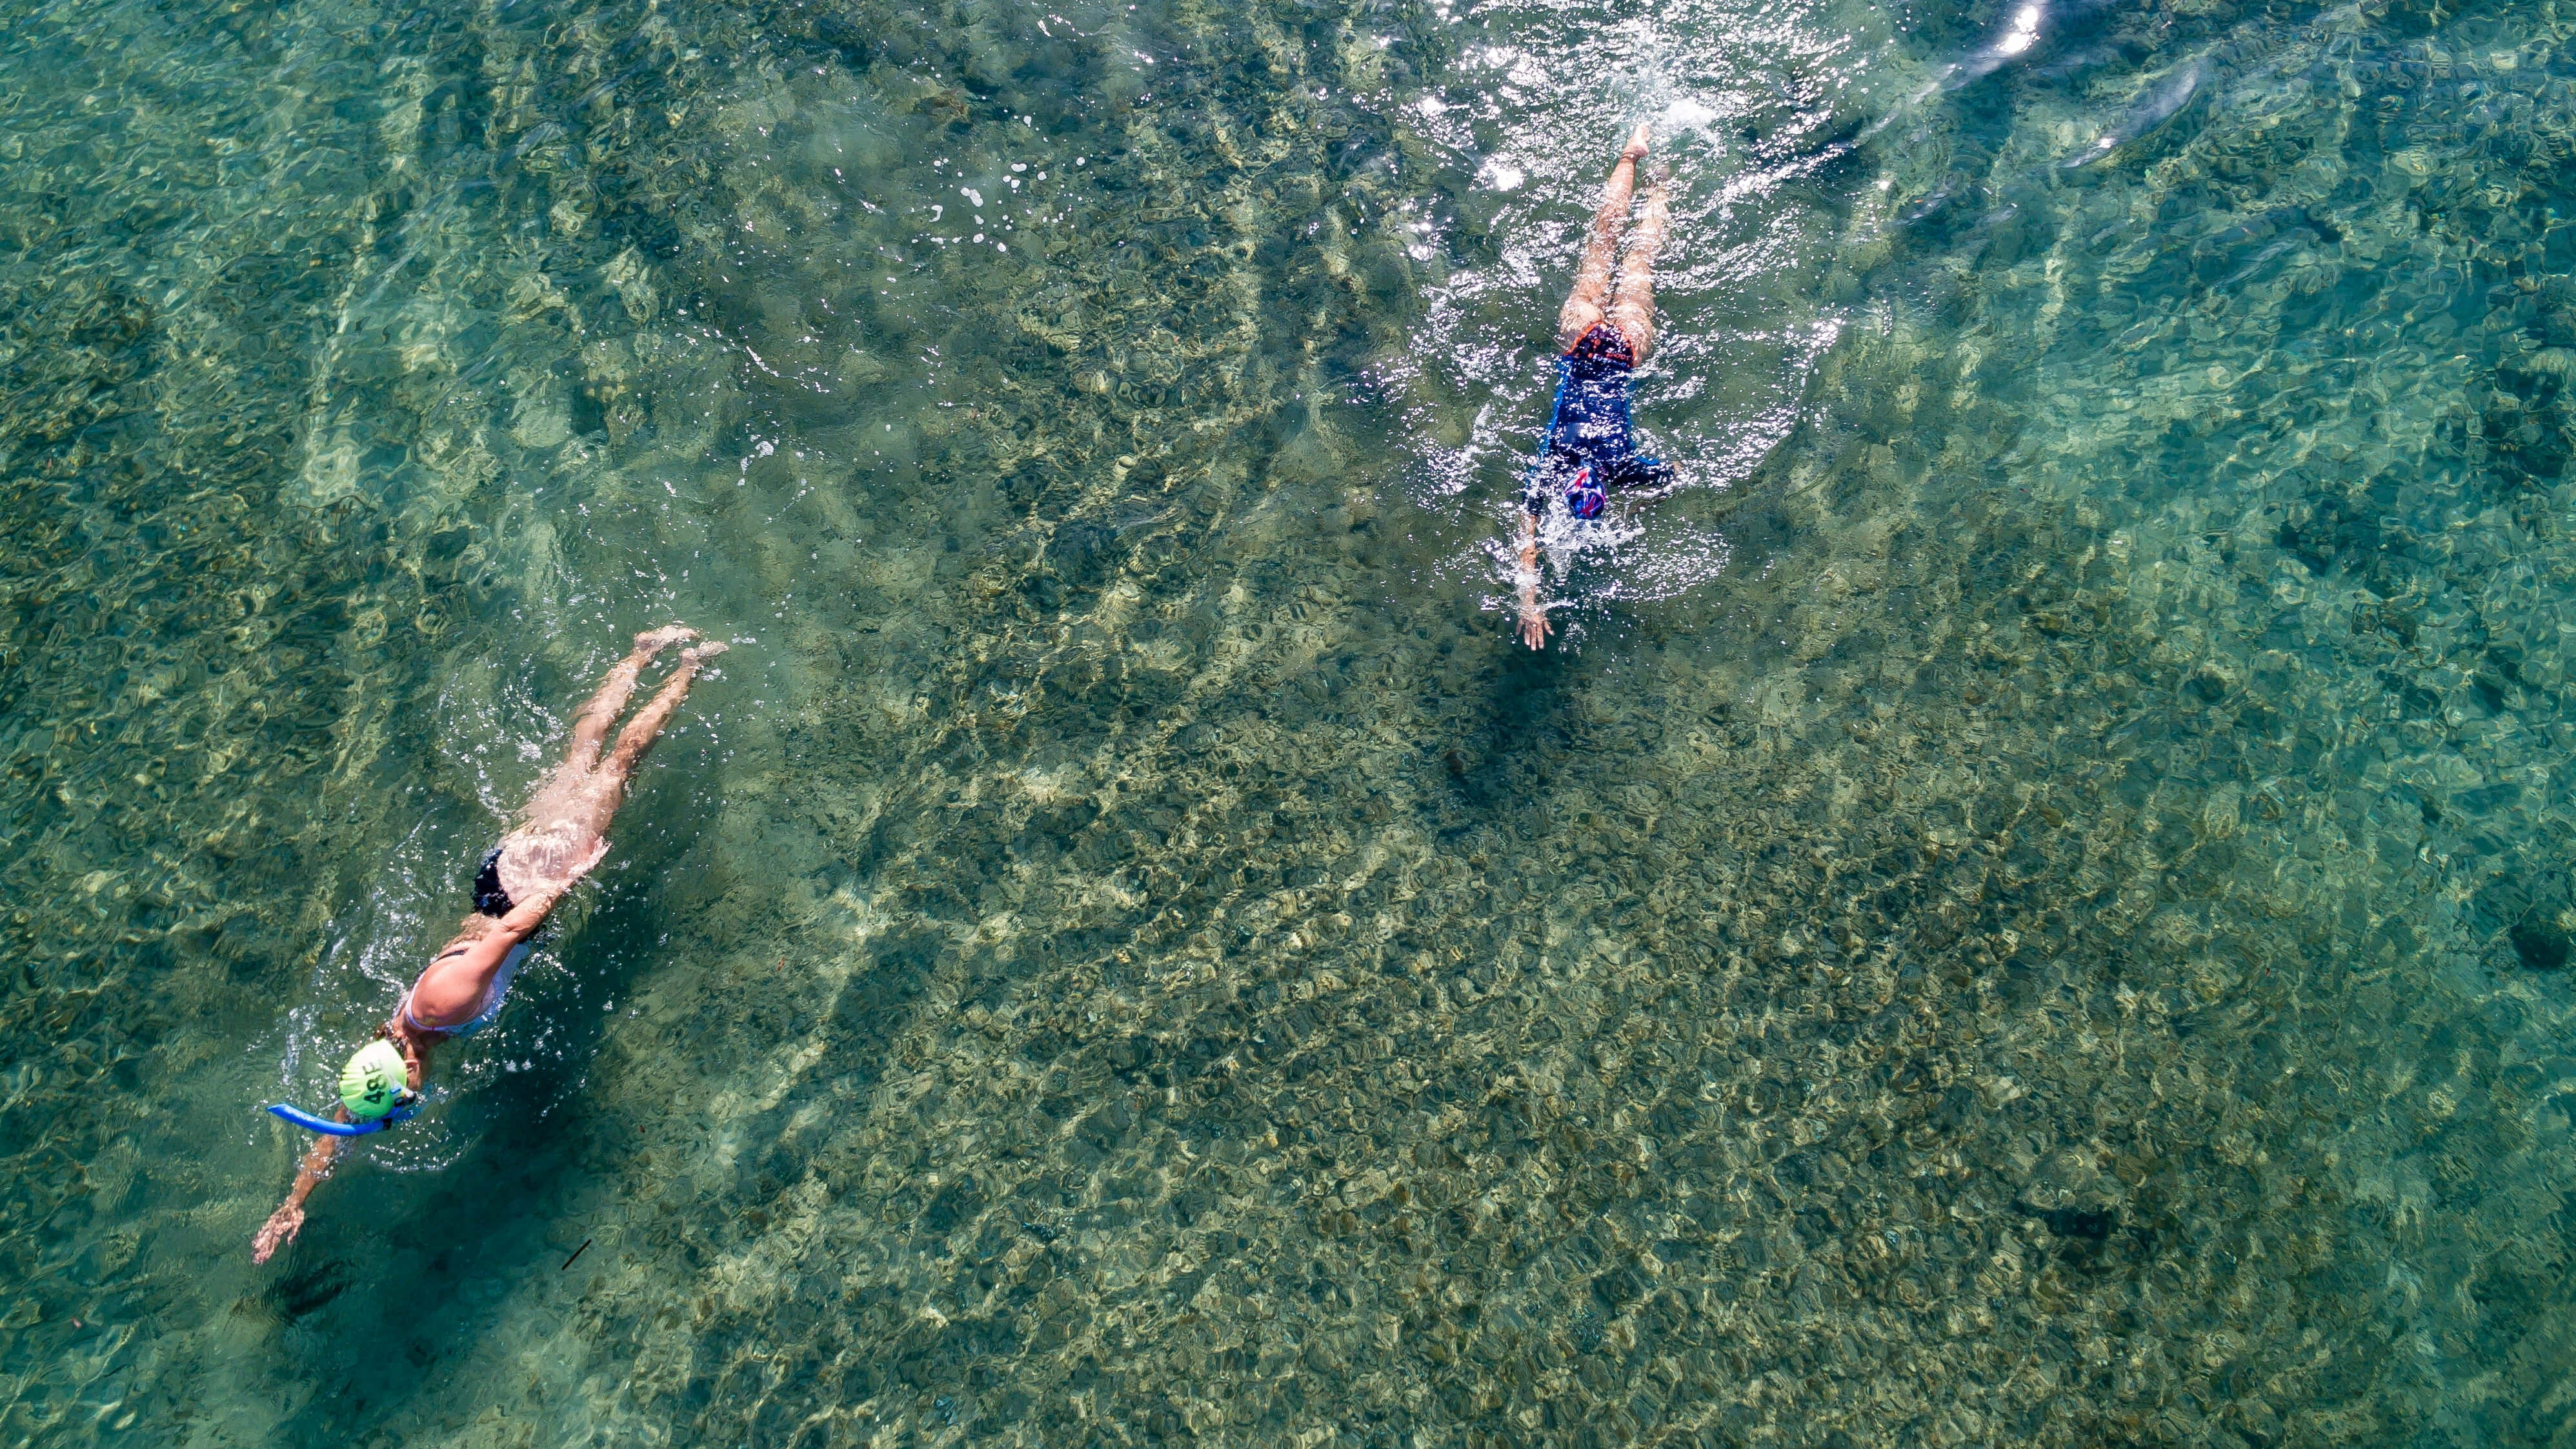 How To Avoid Brain Eating Parasites And Harmful Bacteria While Swimming